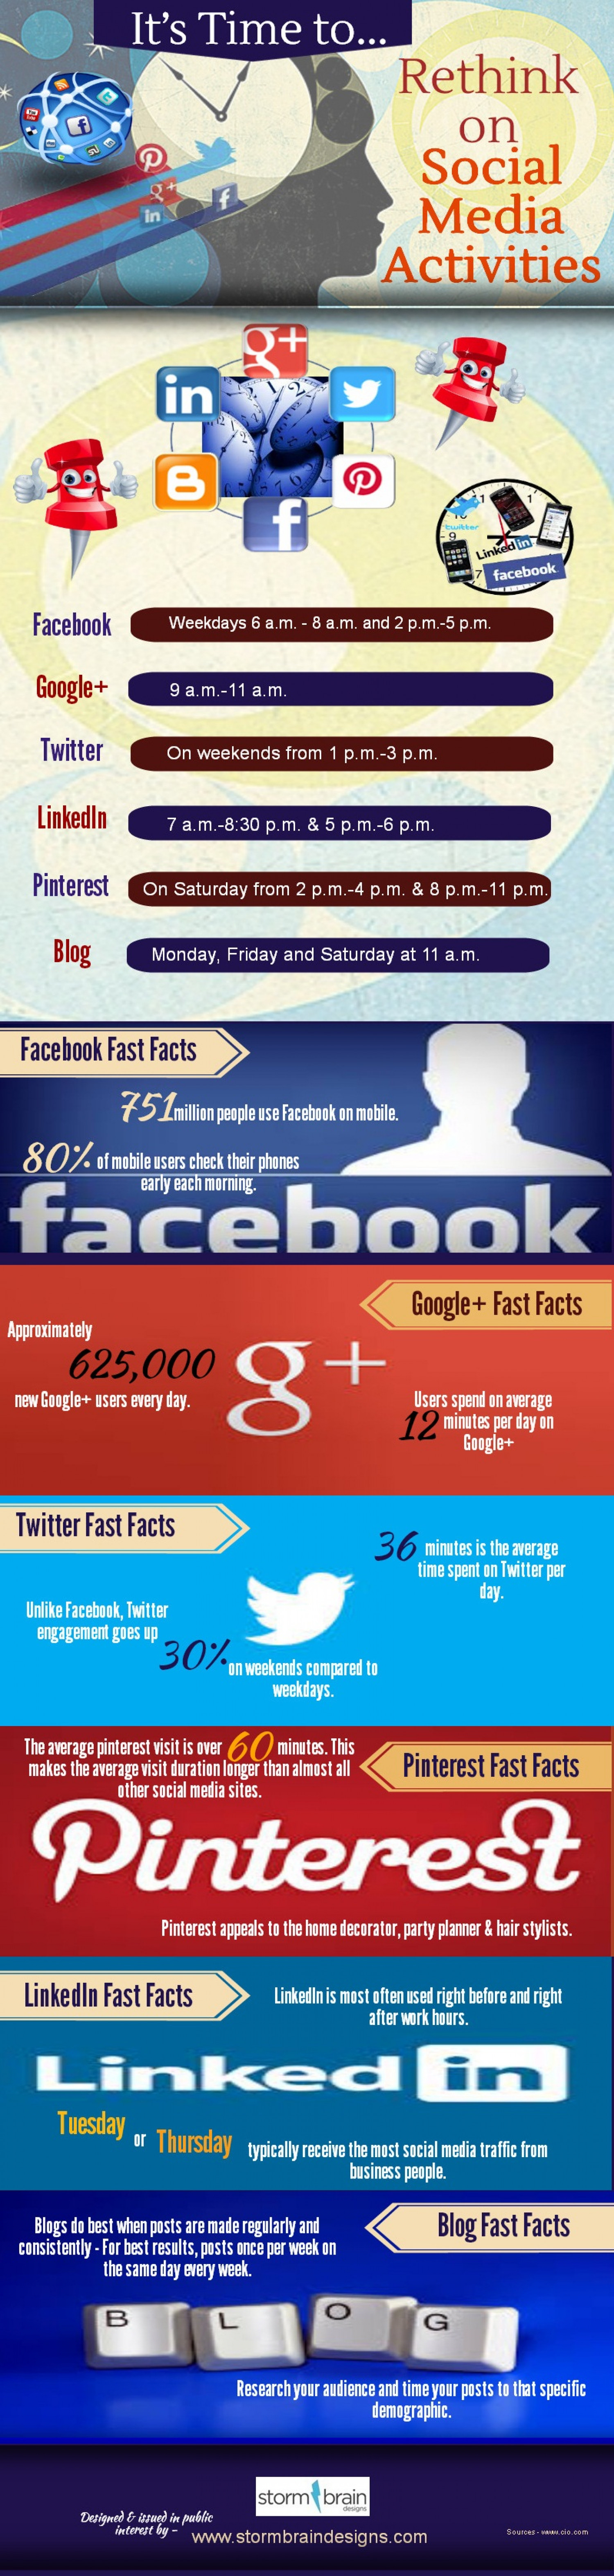 It's Time to Rethink on Social Media Activities Infographic